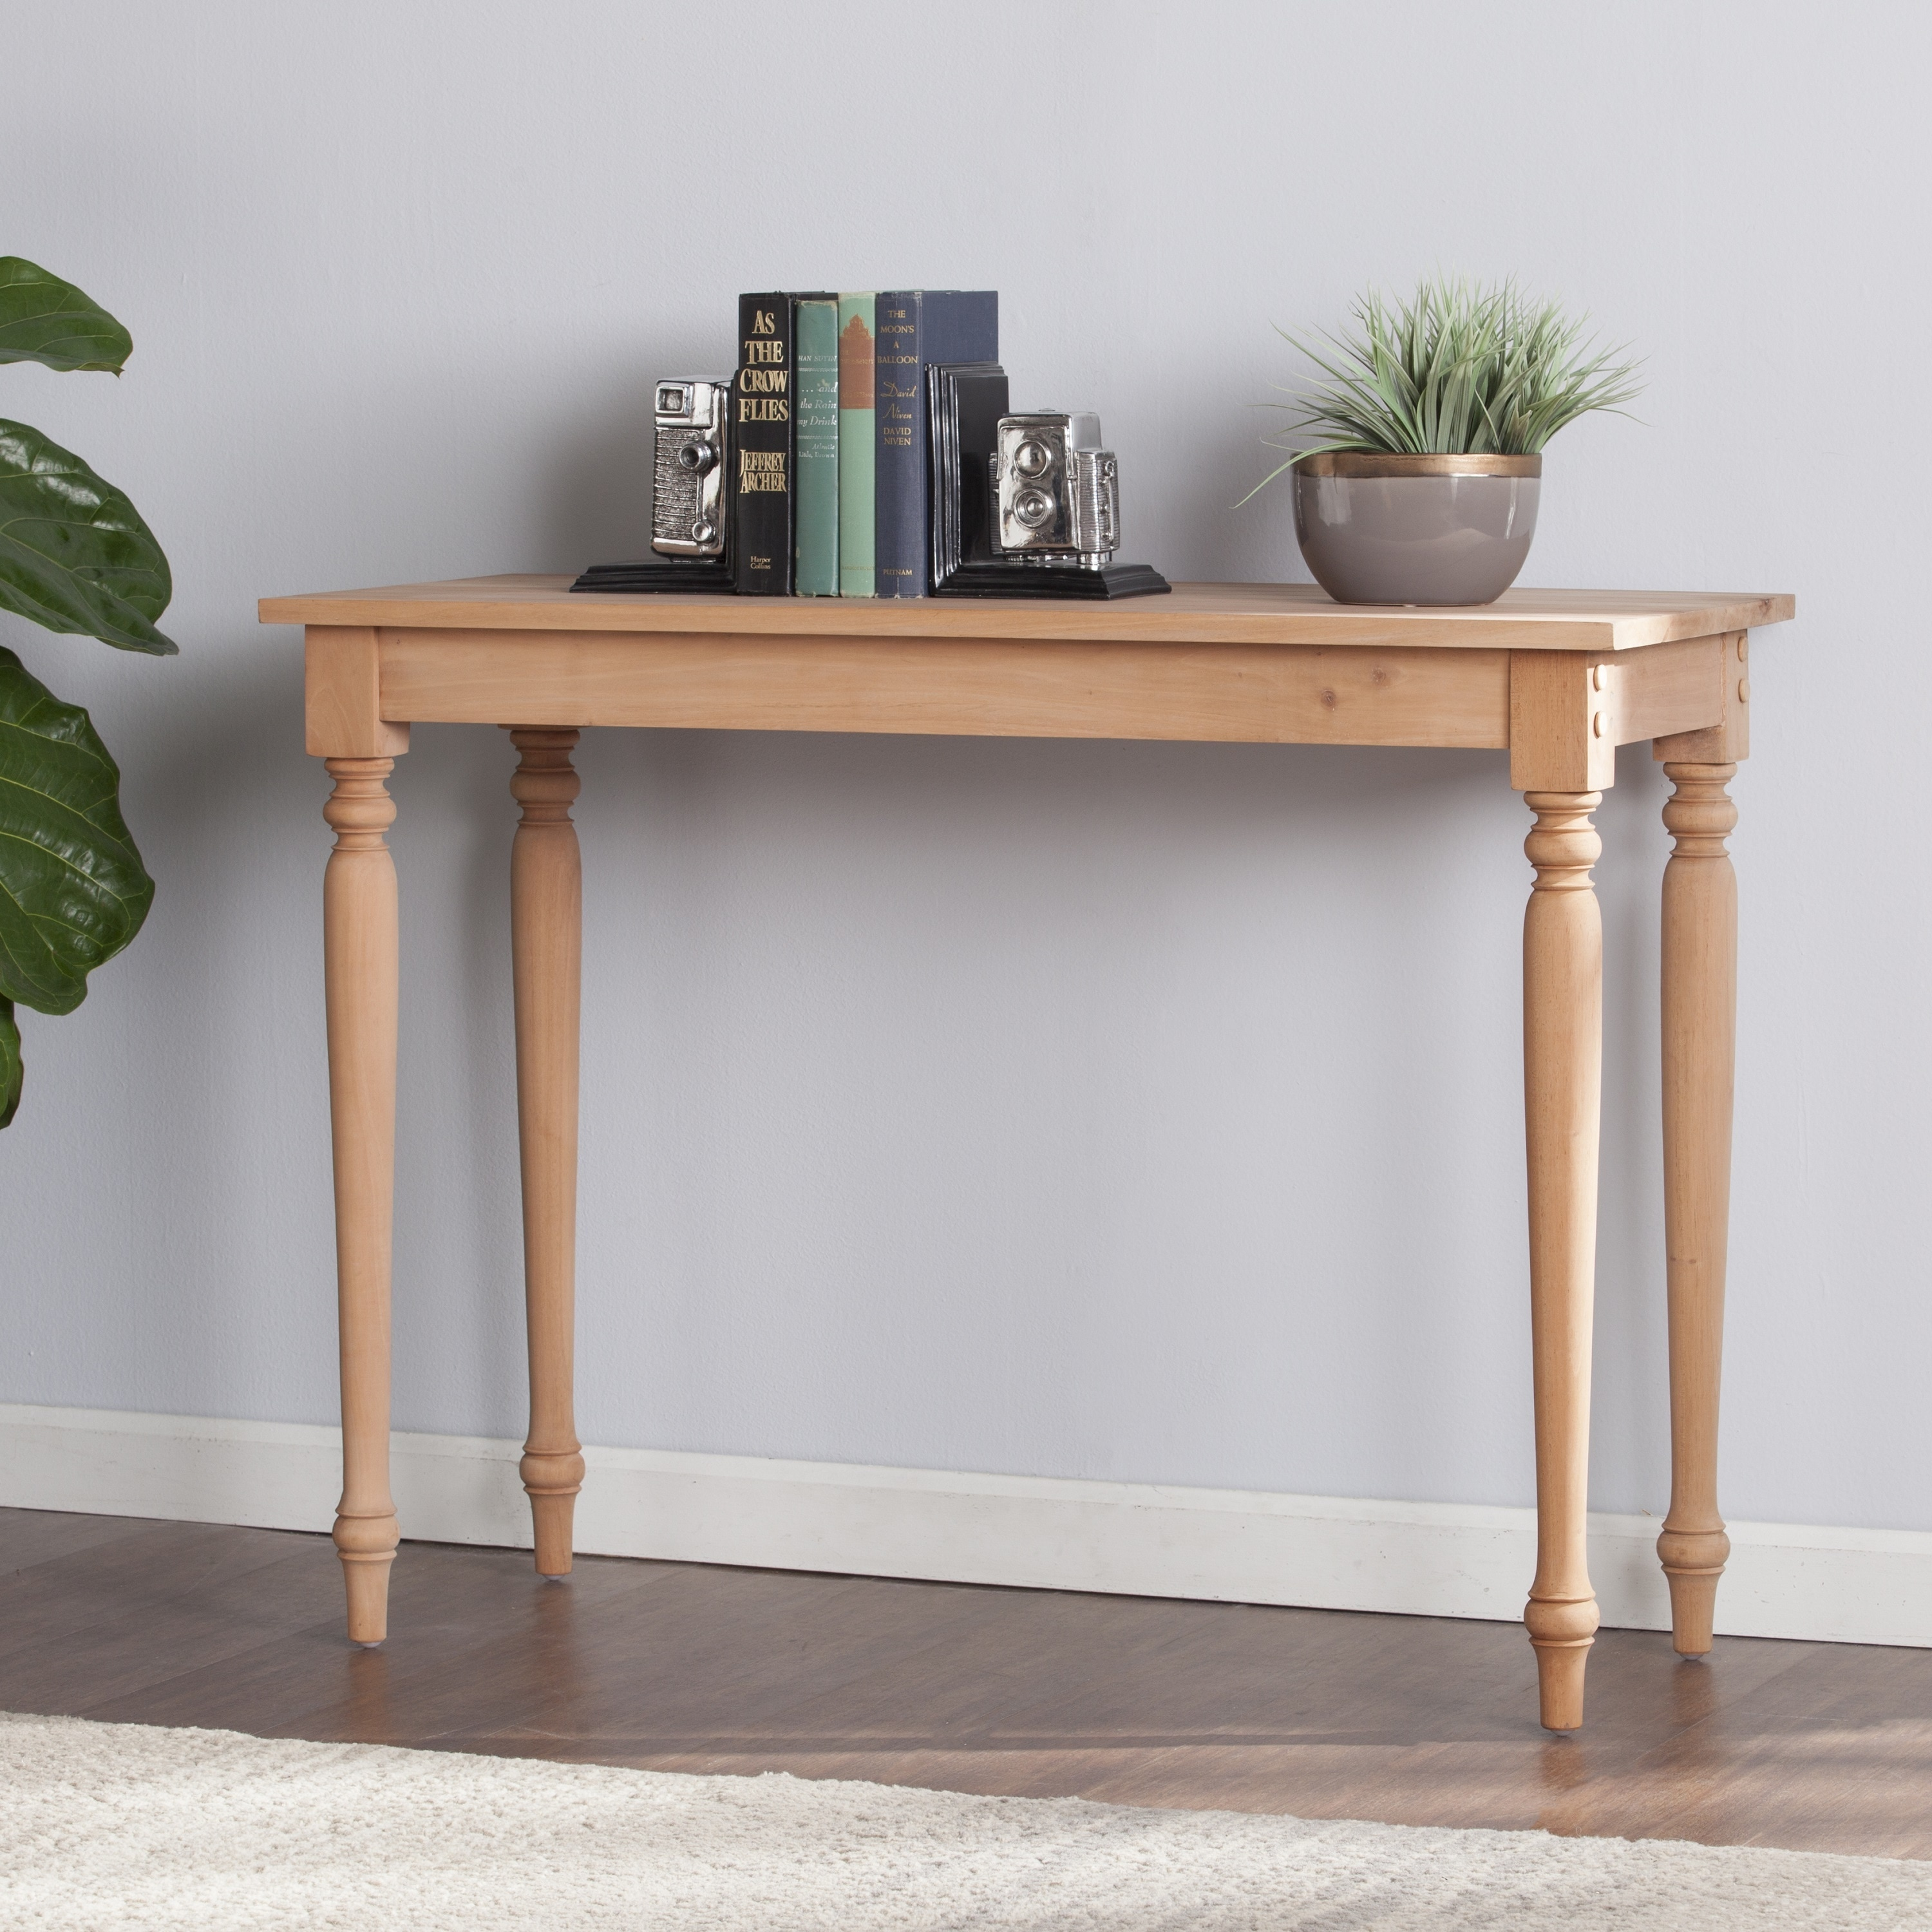 Harper Blvd Hepburn Unfinished Wood Console Table (OS3244...